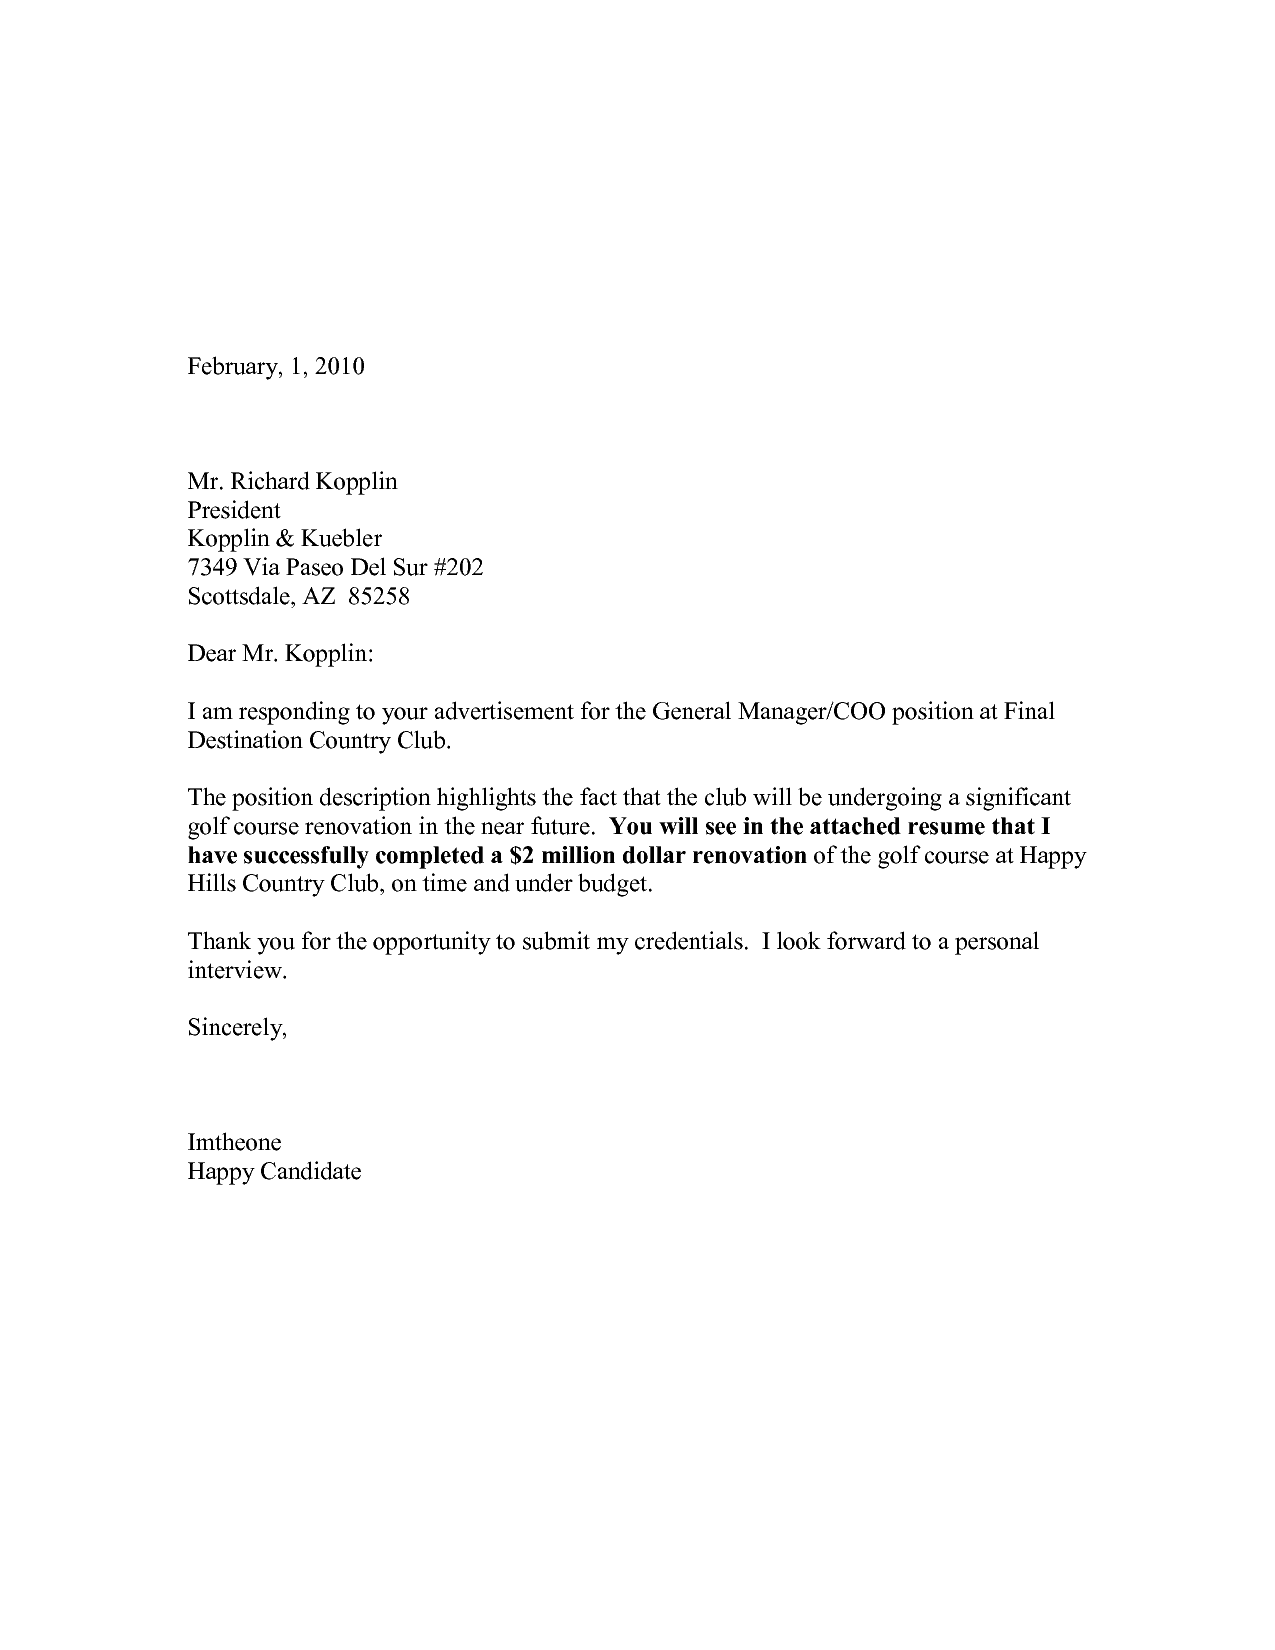 cv cover letter basic cover letter for a resume 21296